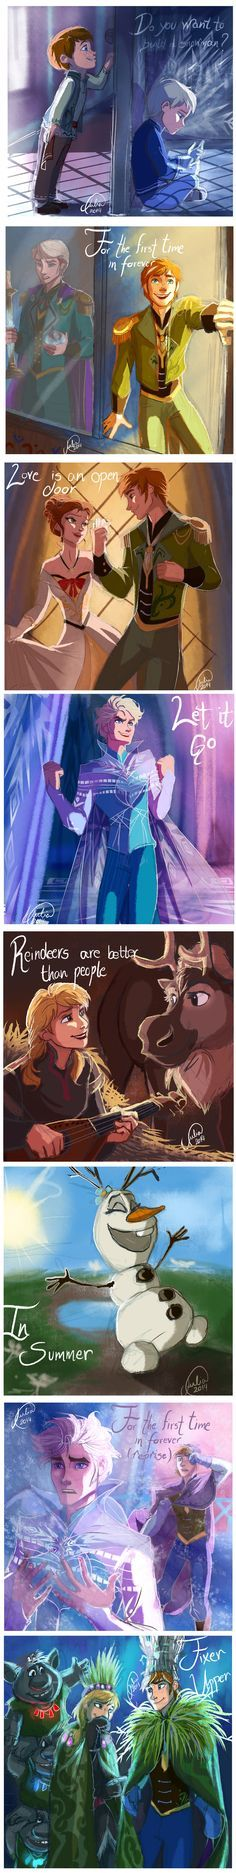 Frozen Songs gender bender